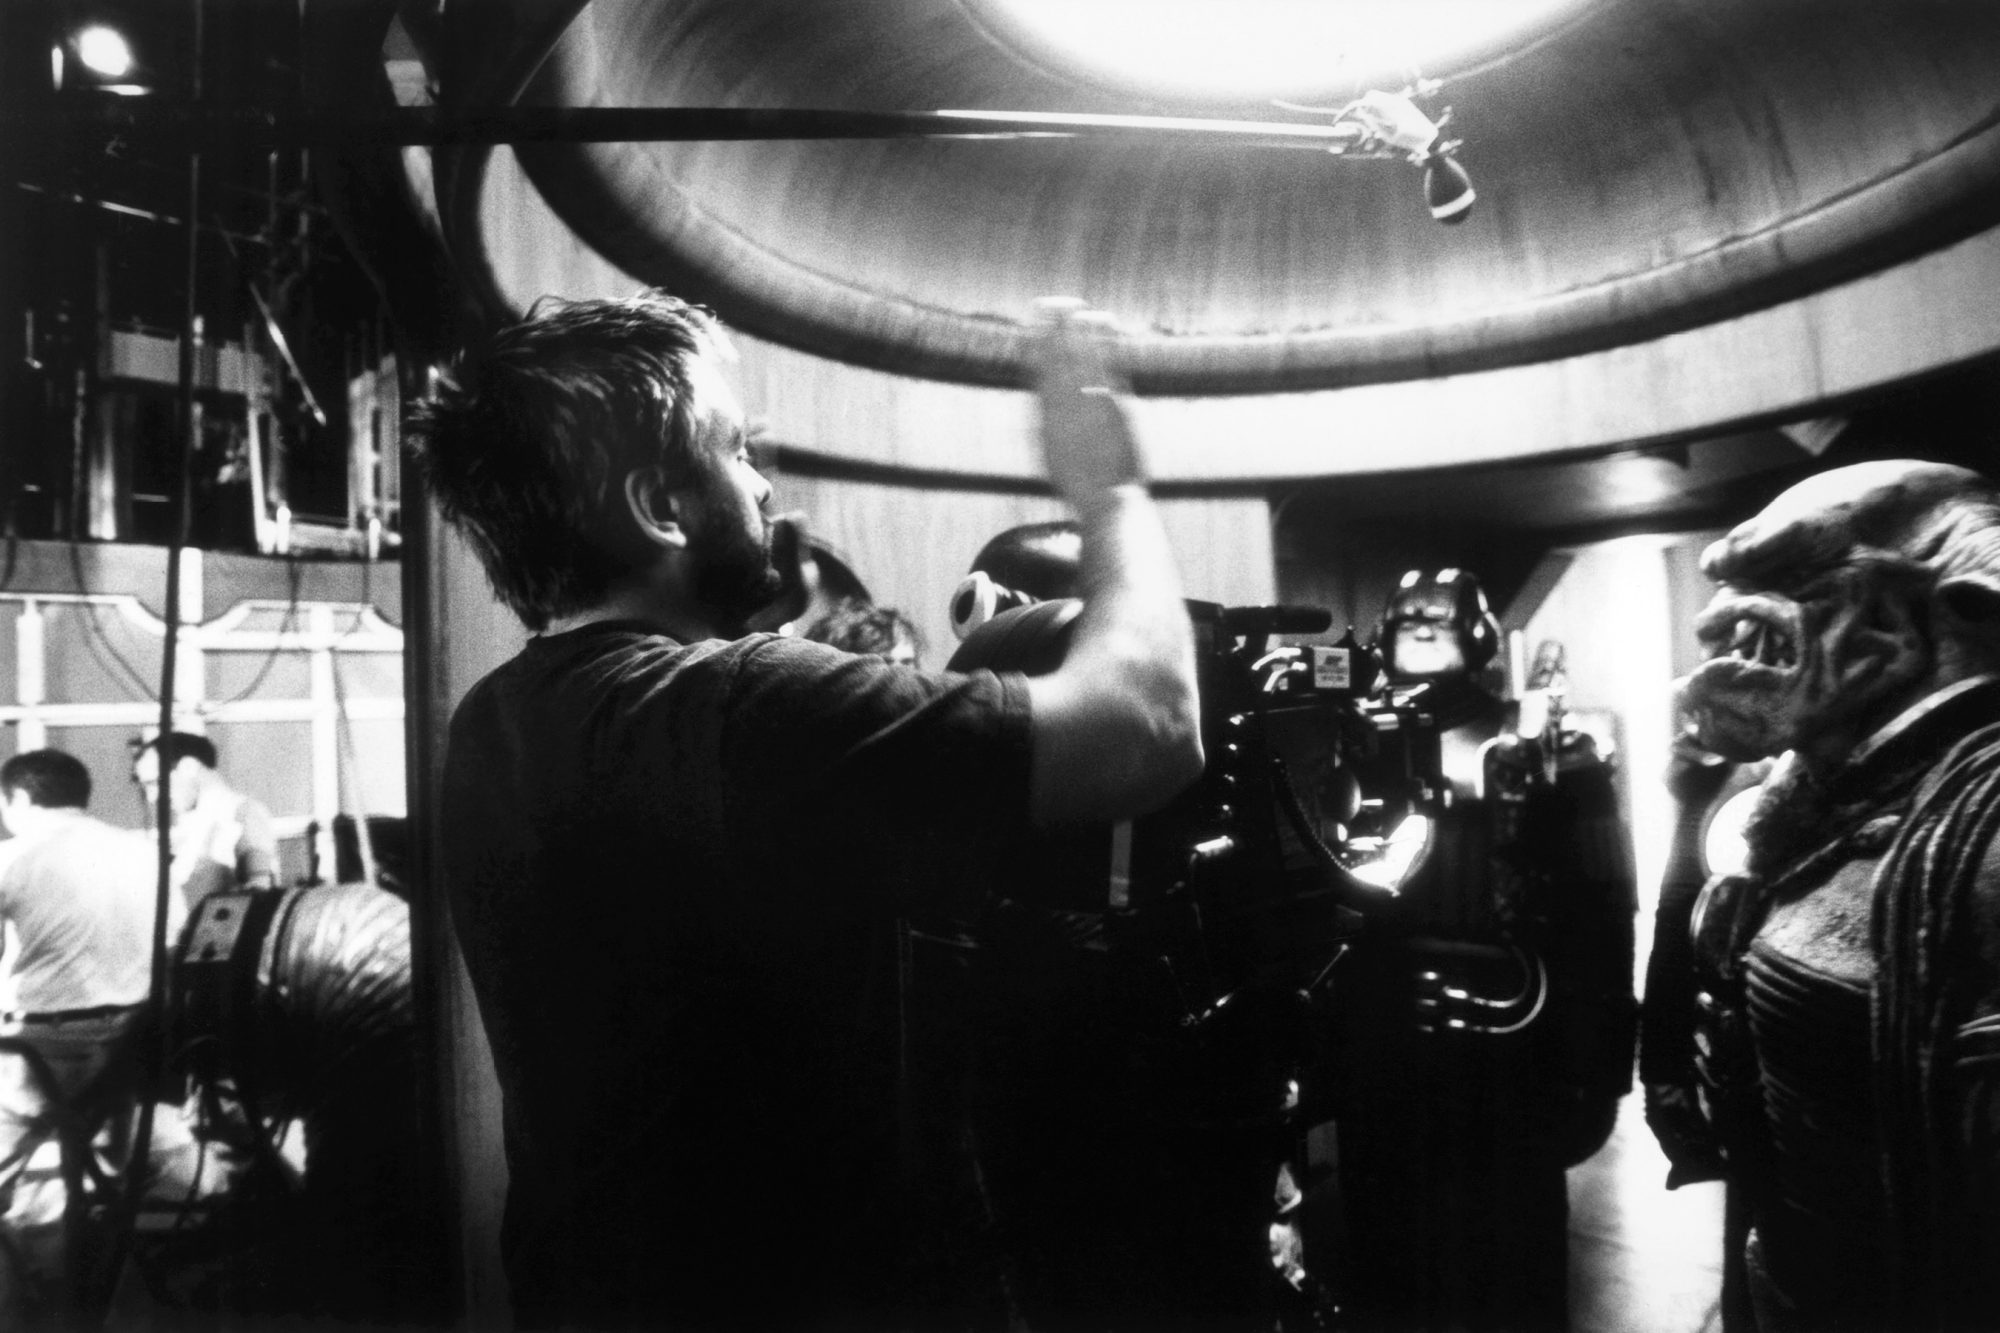 THE FIFTH ELEMENT, director Luc Besson on set, 1997, © Columbia/courtesy Everett Collection